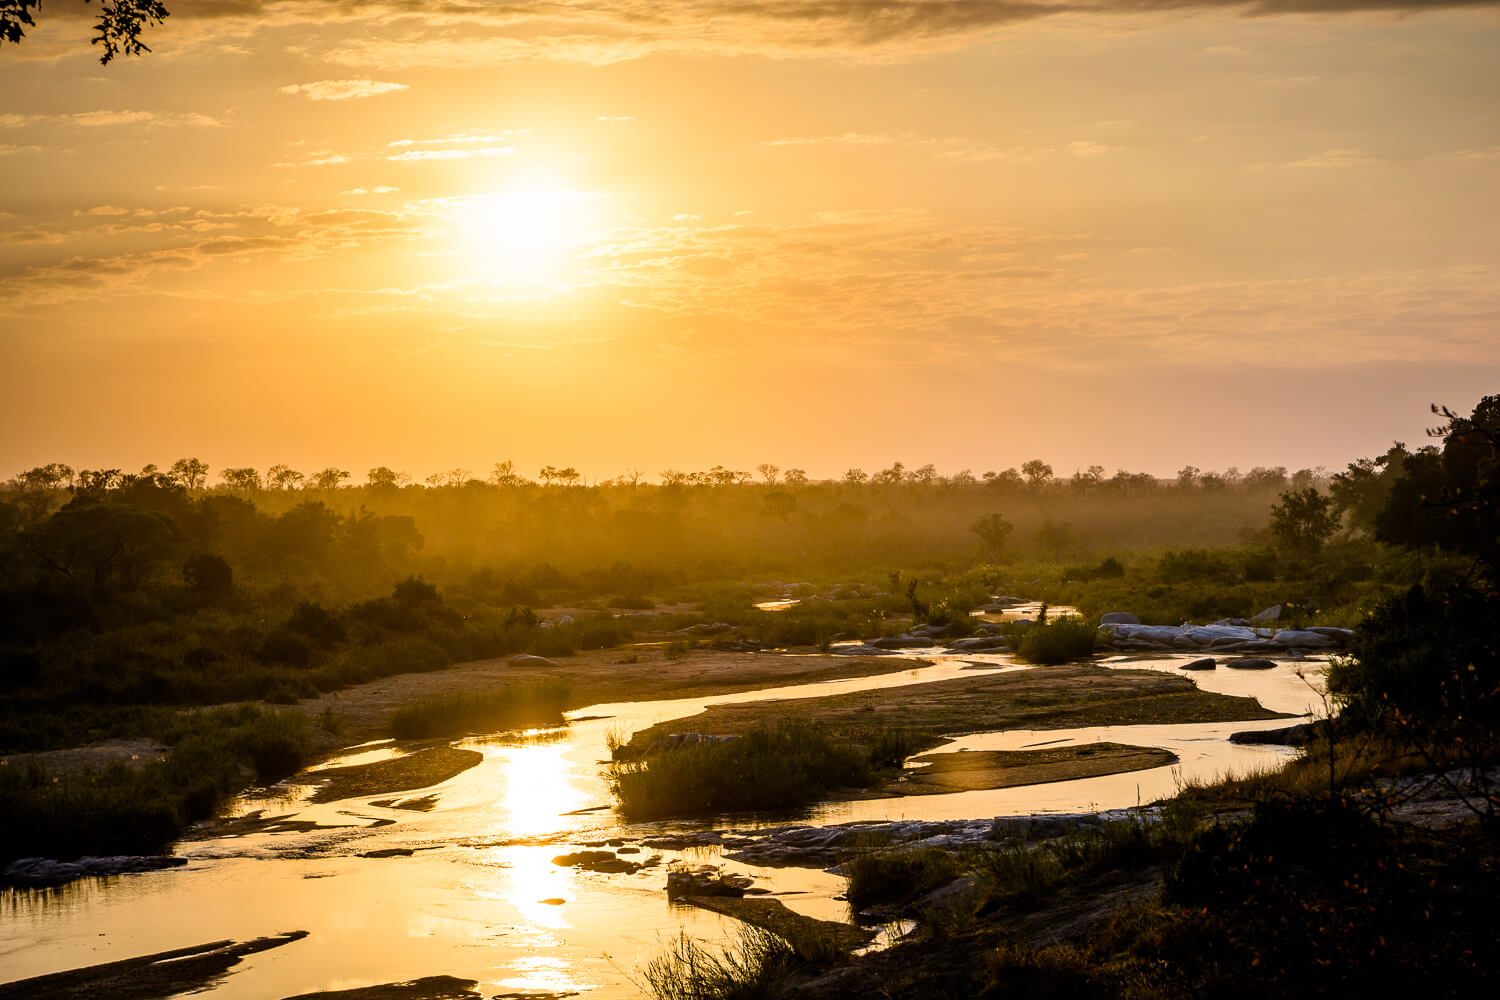 A guide to night game drives on an African safari